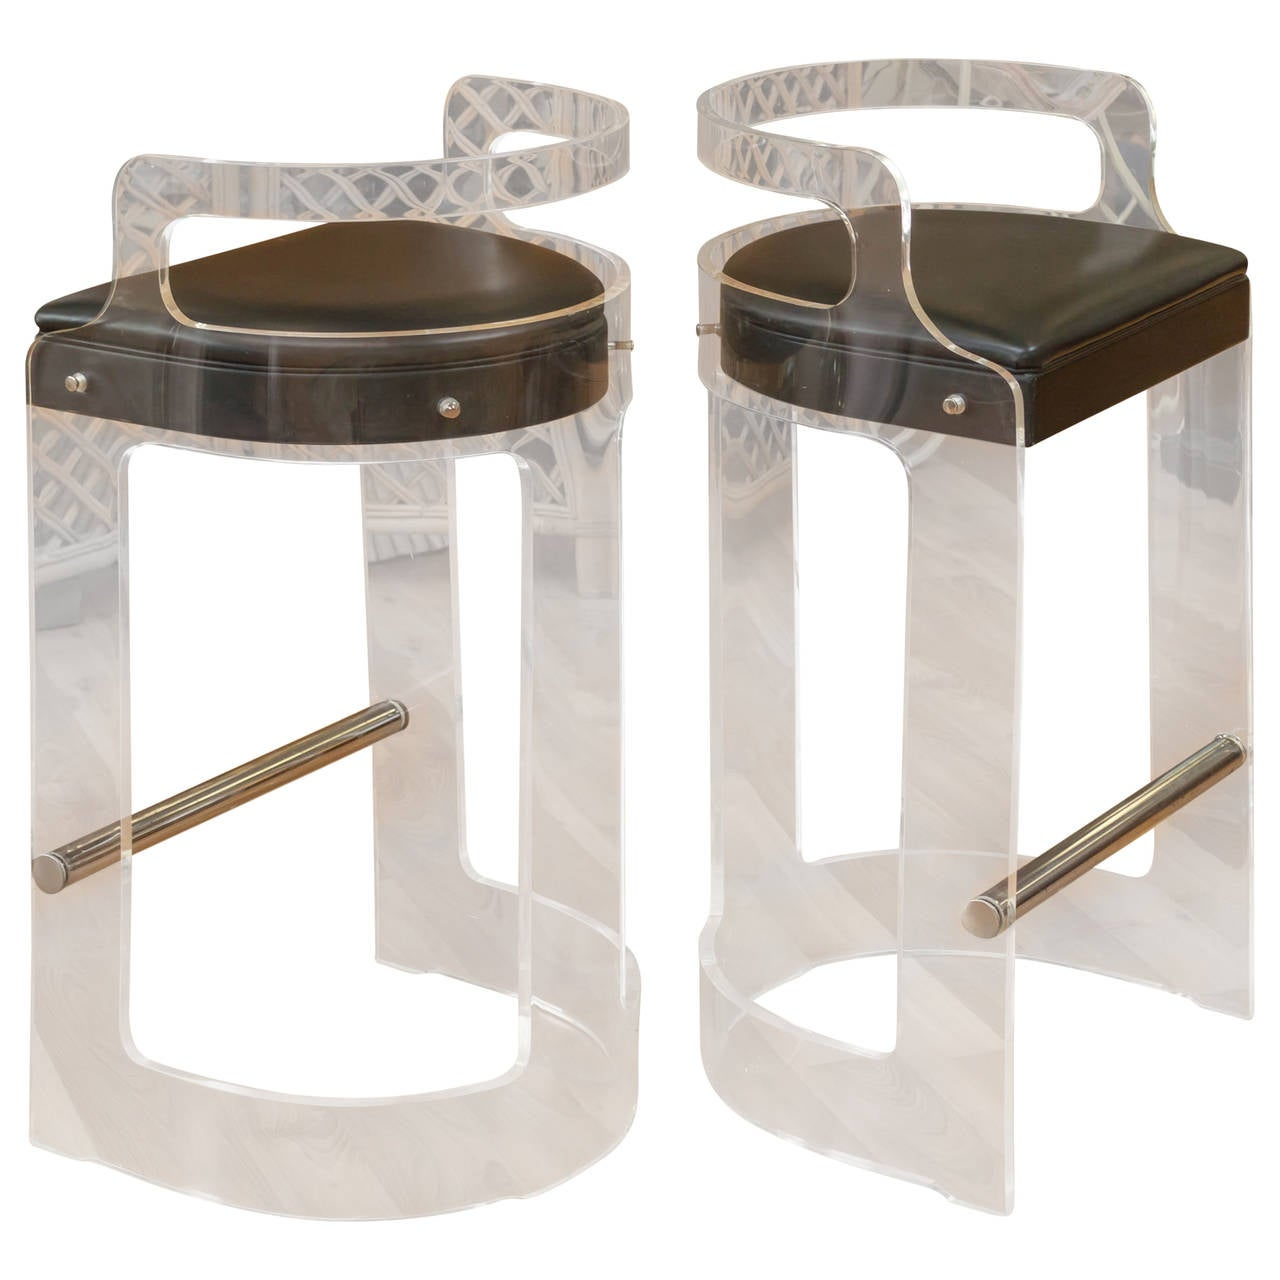 1970s Pair of Lucite Bar Stools, Hill Manufacturing, NY at 1stdibs